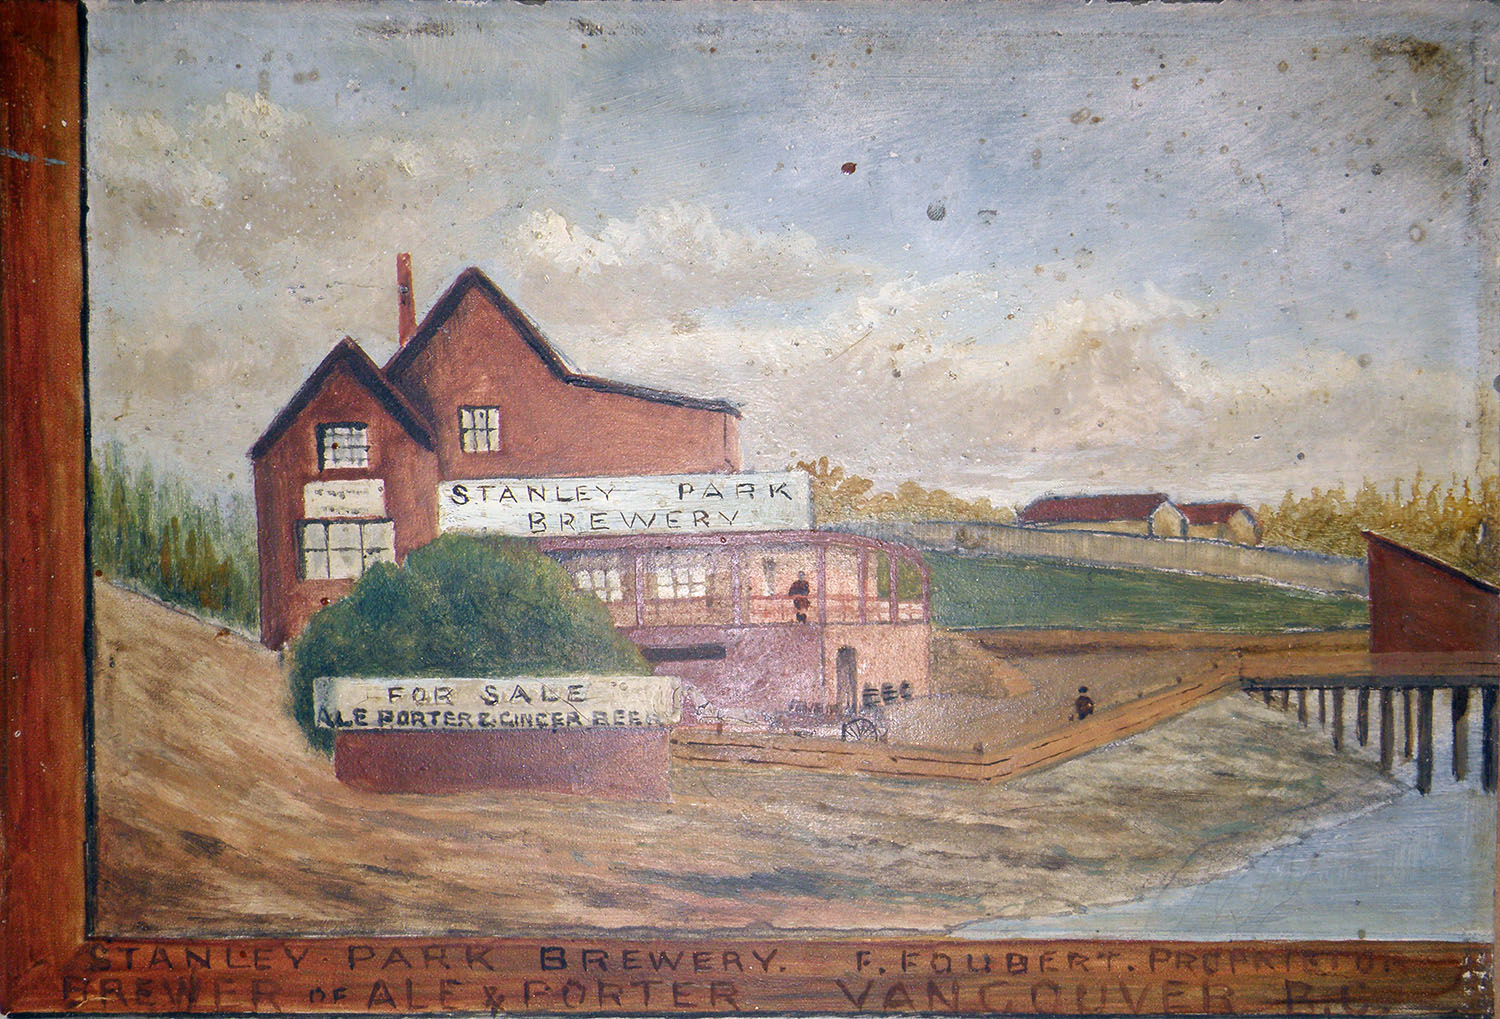 Detail from Stanley Park entrance and Stanley Park Brewery. Painted in 1897. Artist anonymous. Reference code AM1562-: 72-574.